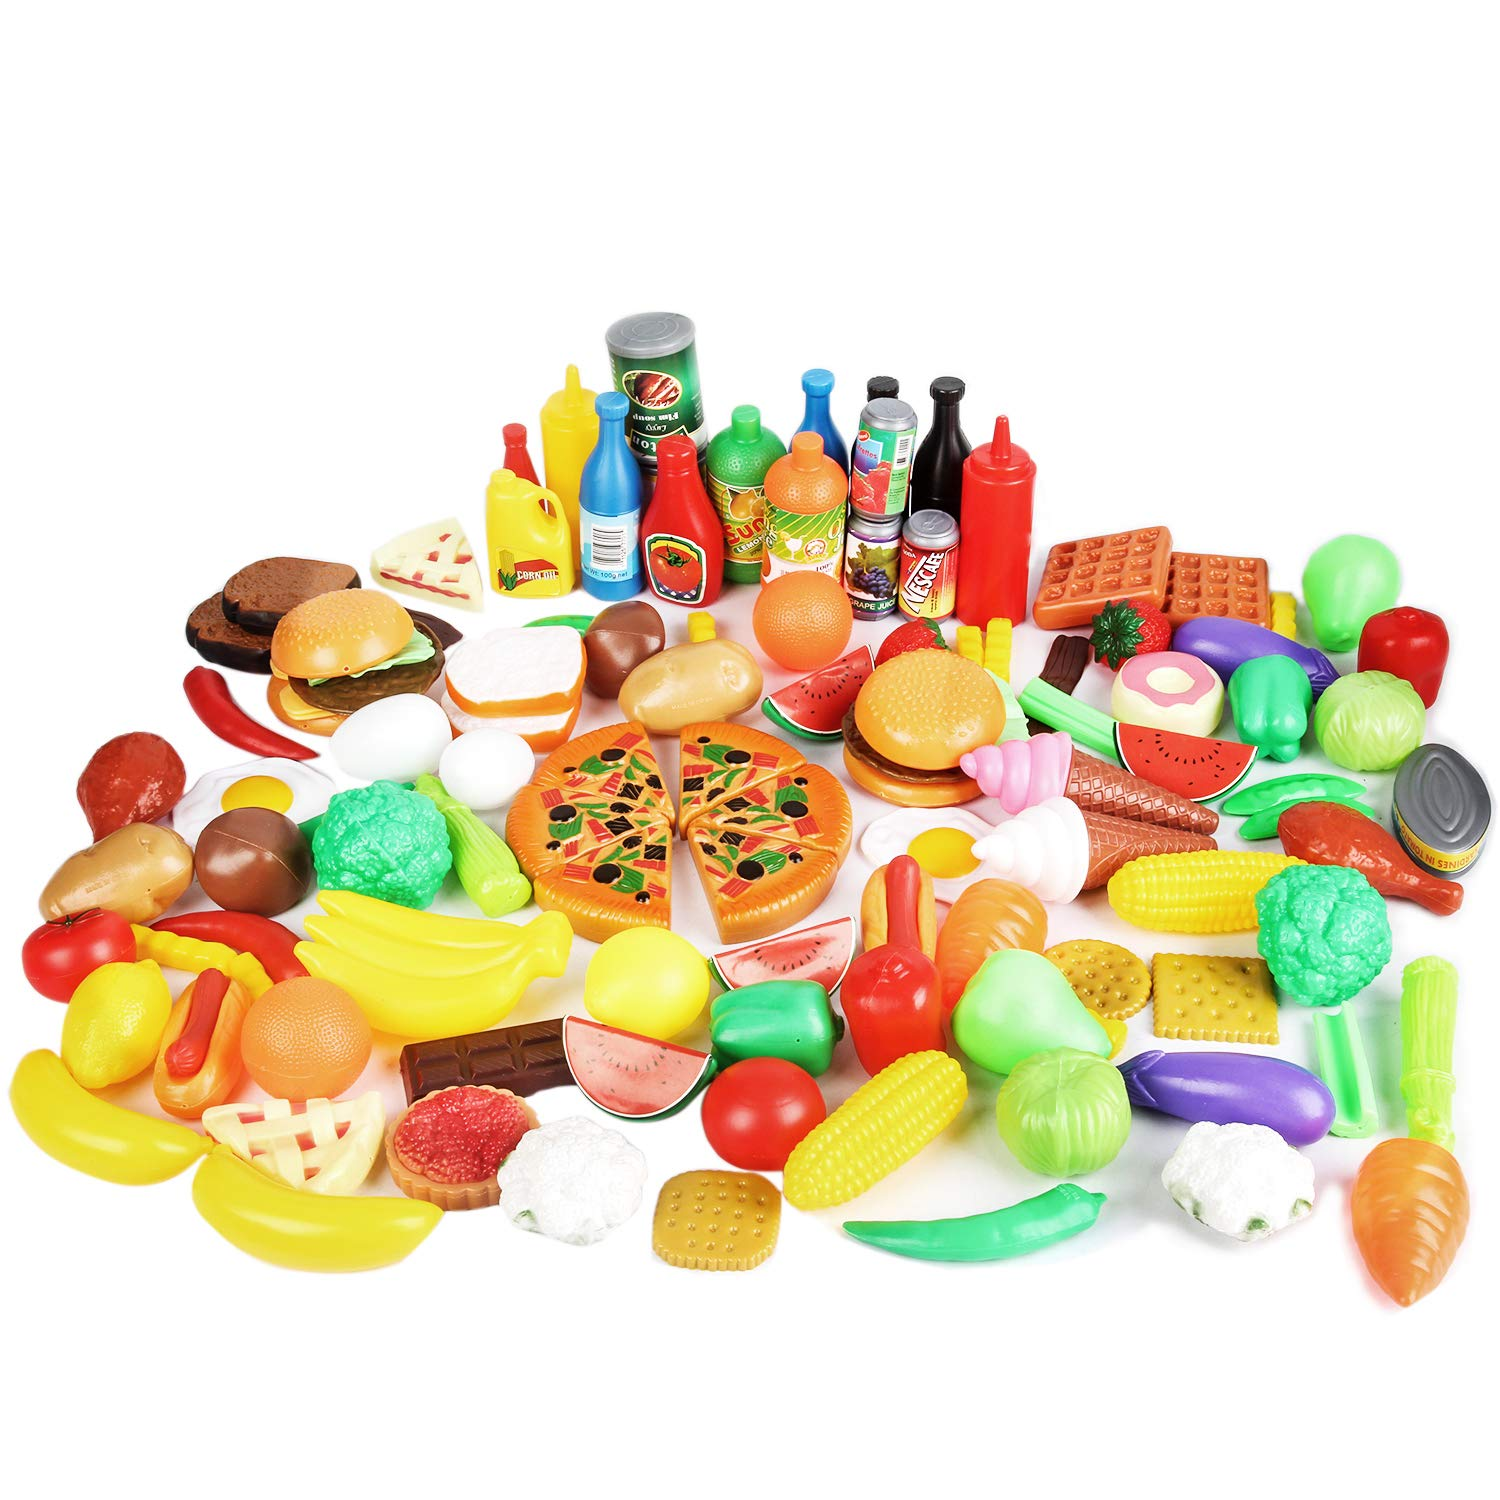 CatchStar Play Food Durable Pretend Food Plastic Vegetable Toy Set for Kids Toddlers Play Kitchen Playset Accessories Gift Toy 120 Piece